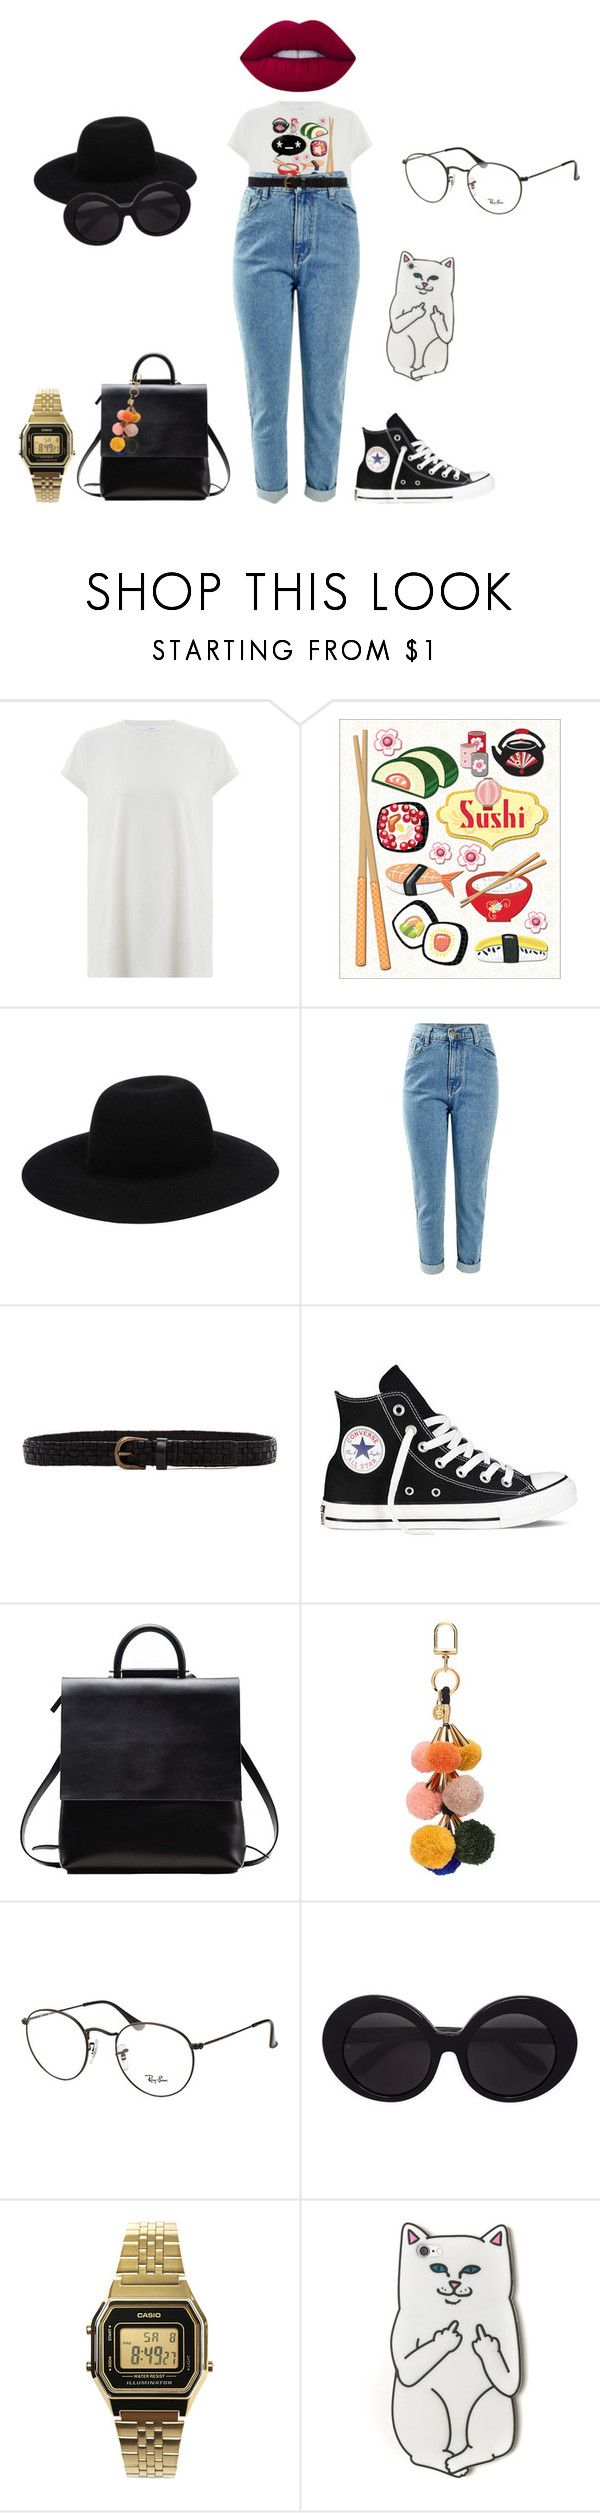 """""""🍱"""" by lena1612 ❤ liked on Polyvore featuring Zimmermann, Off-White, Liebeskind, Converse, Tory Burch, Ray-Ban, Linda Farrow, Casio, RIPNDIP and Lime Crime"""